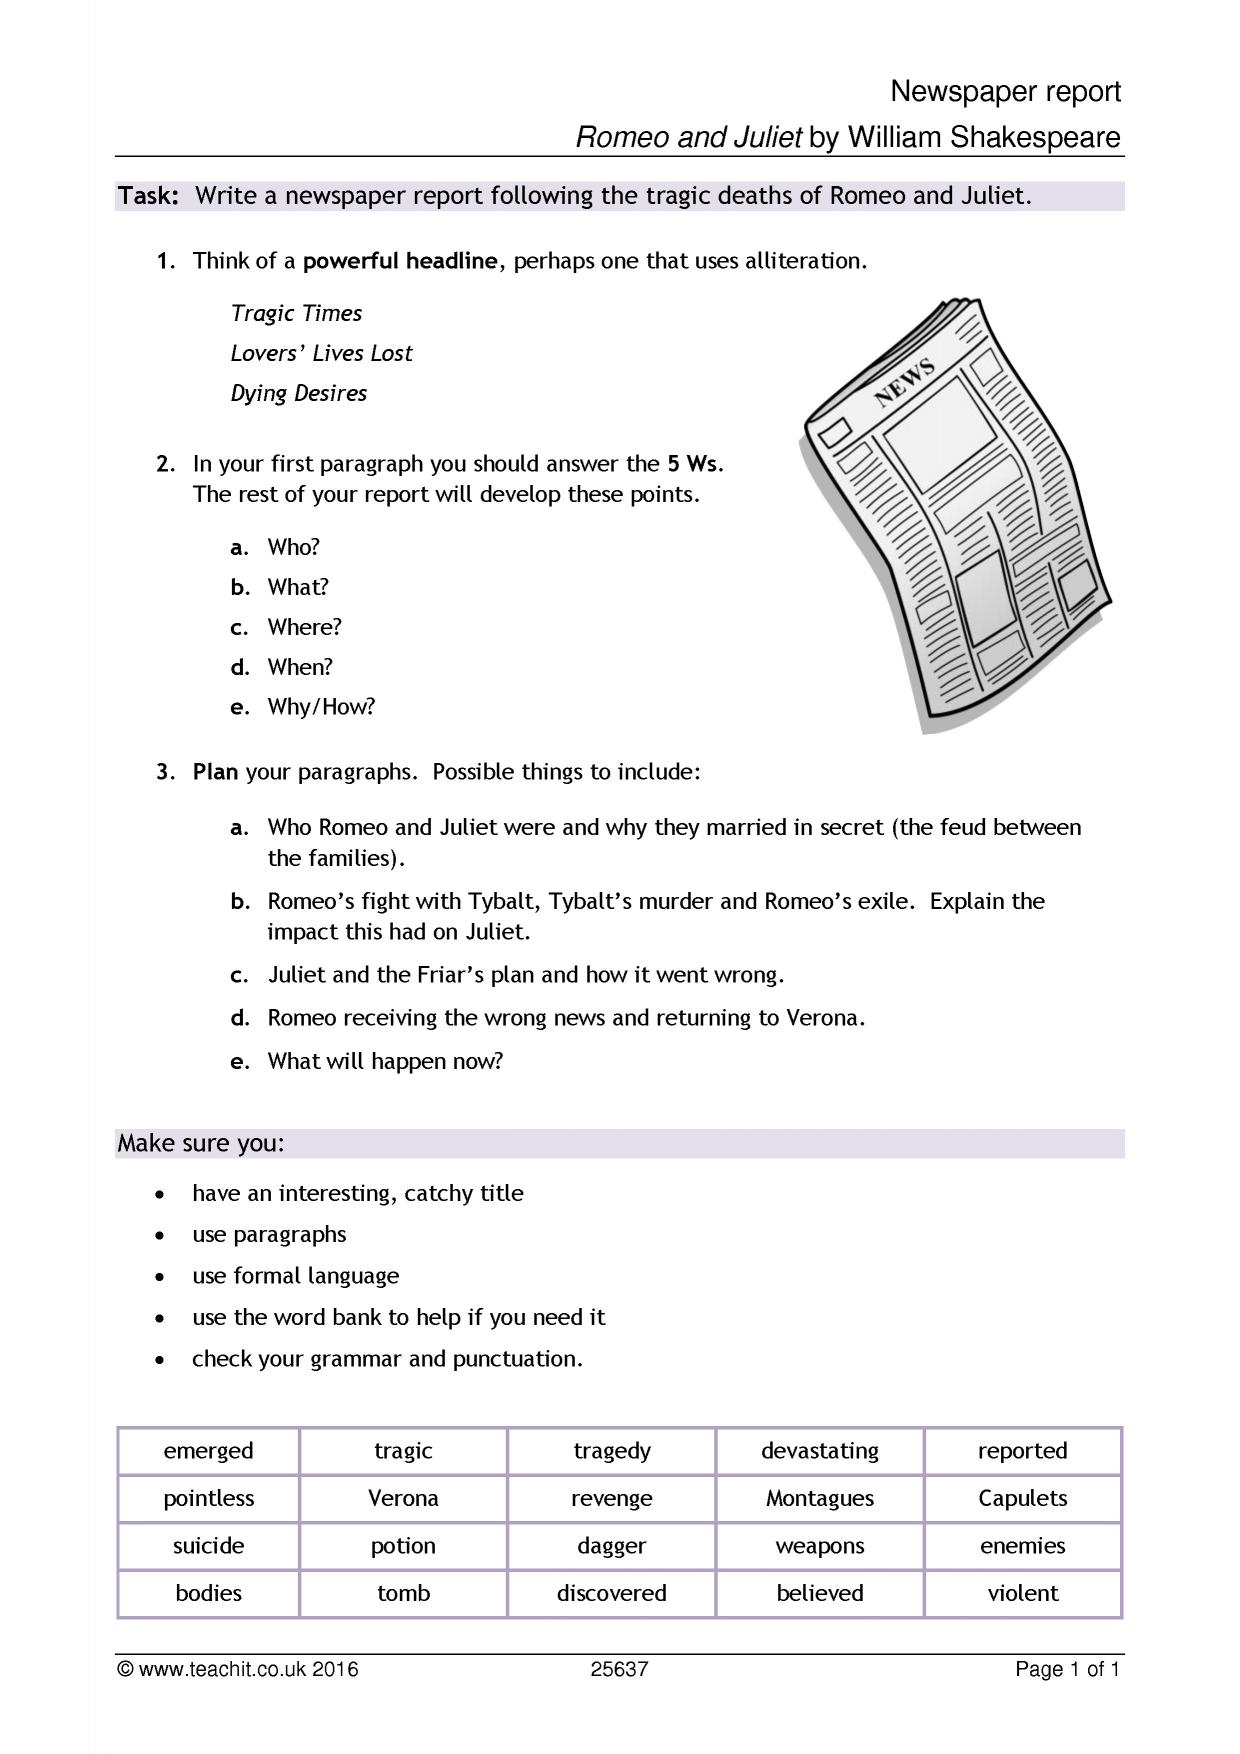 romeo and juliet ks3 plays key stage 3 resources 2 preview